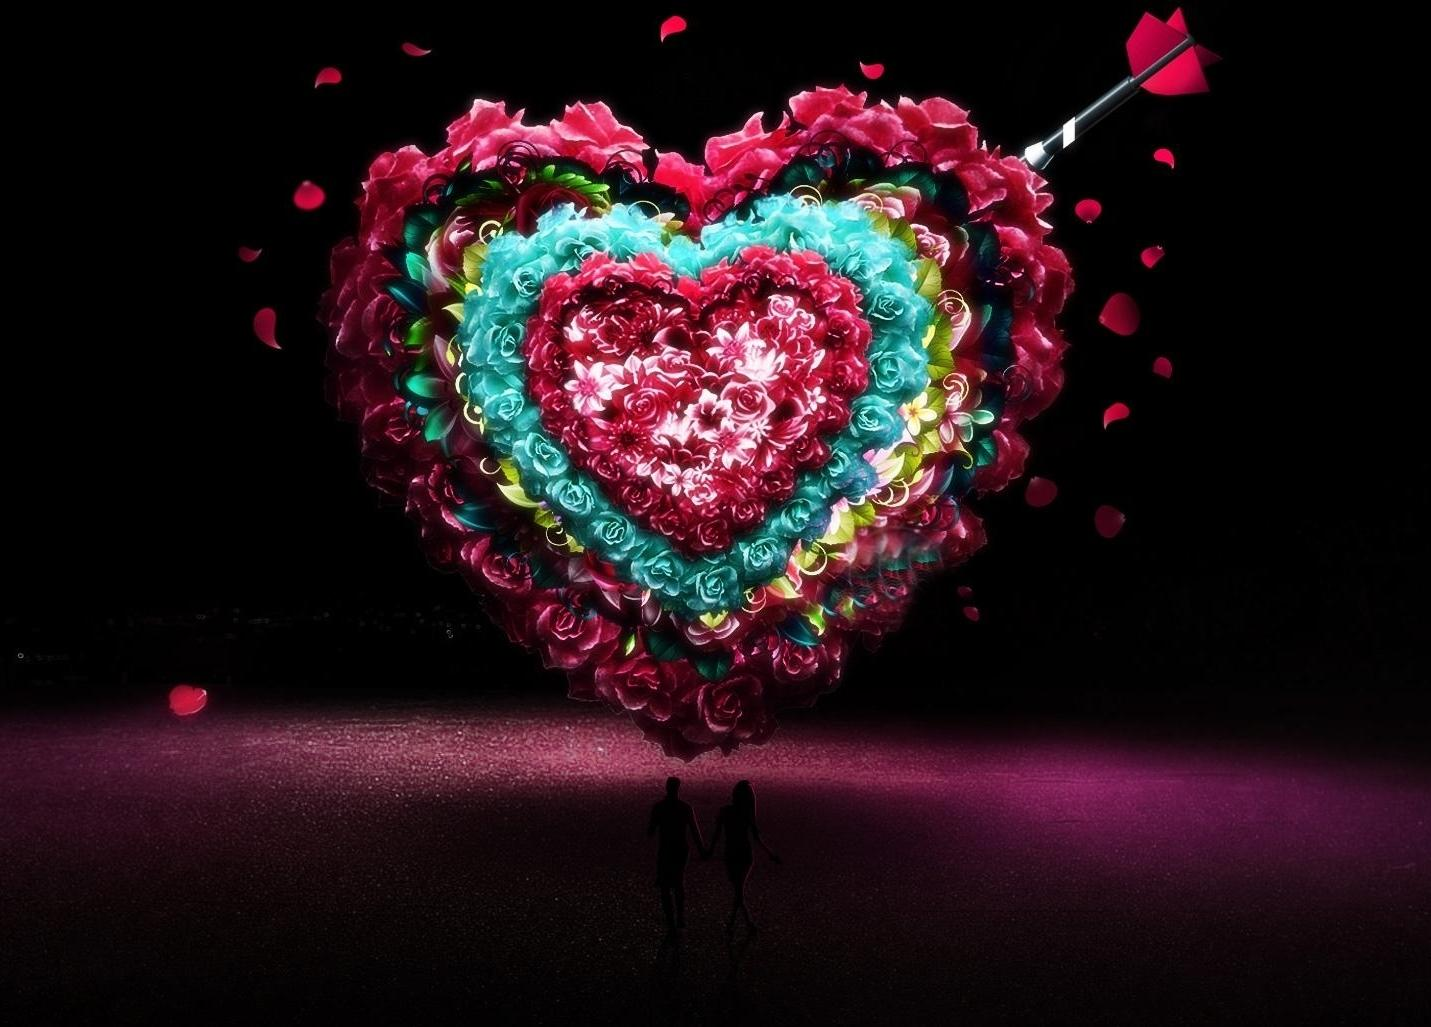 New Love Wallpaper Group With 41 Items Happy Valentines Day Hd